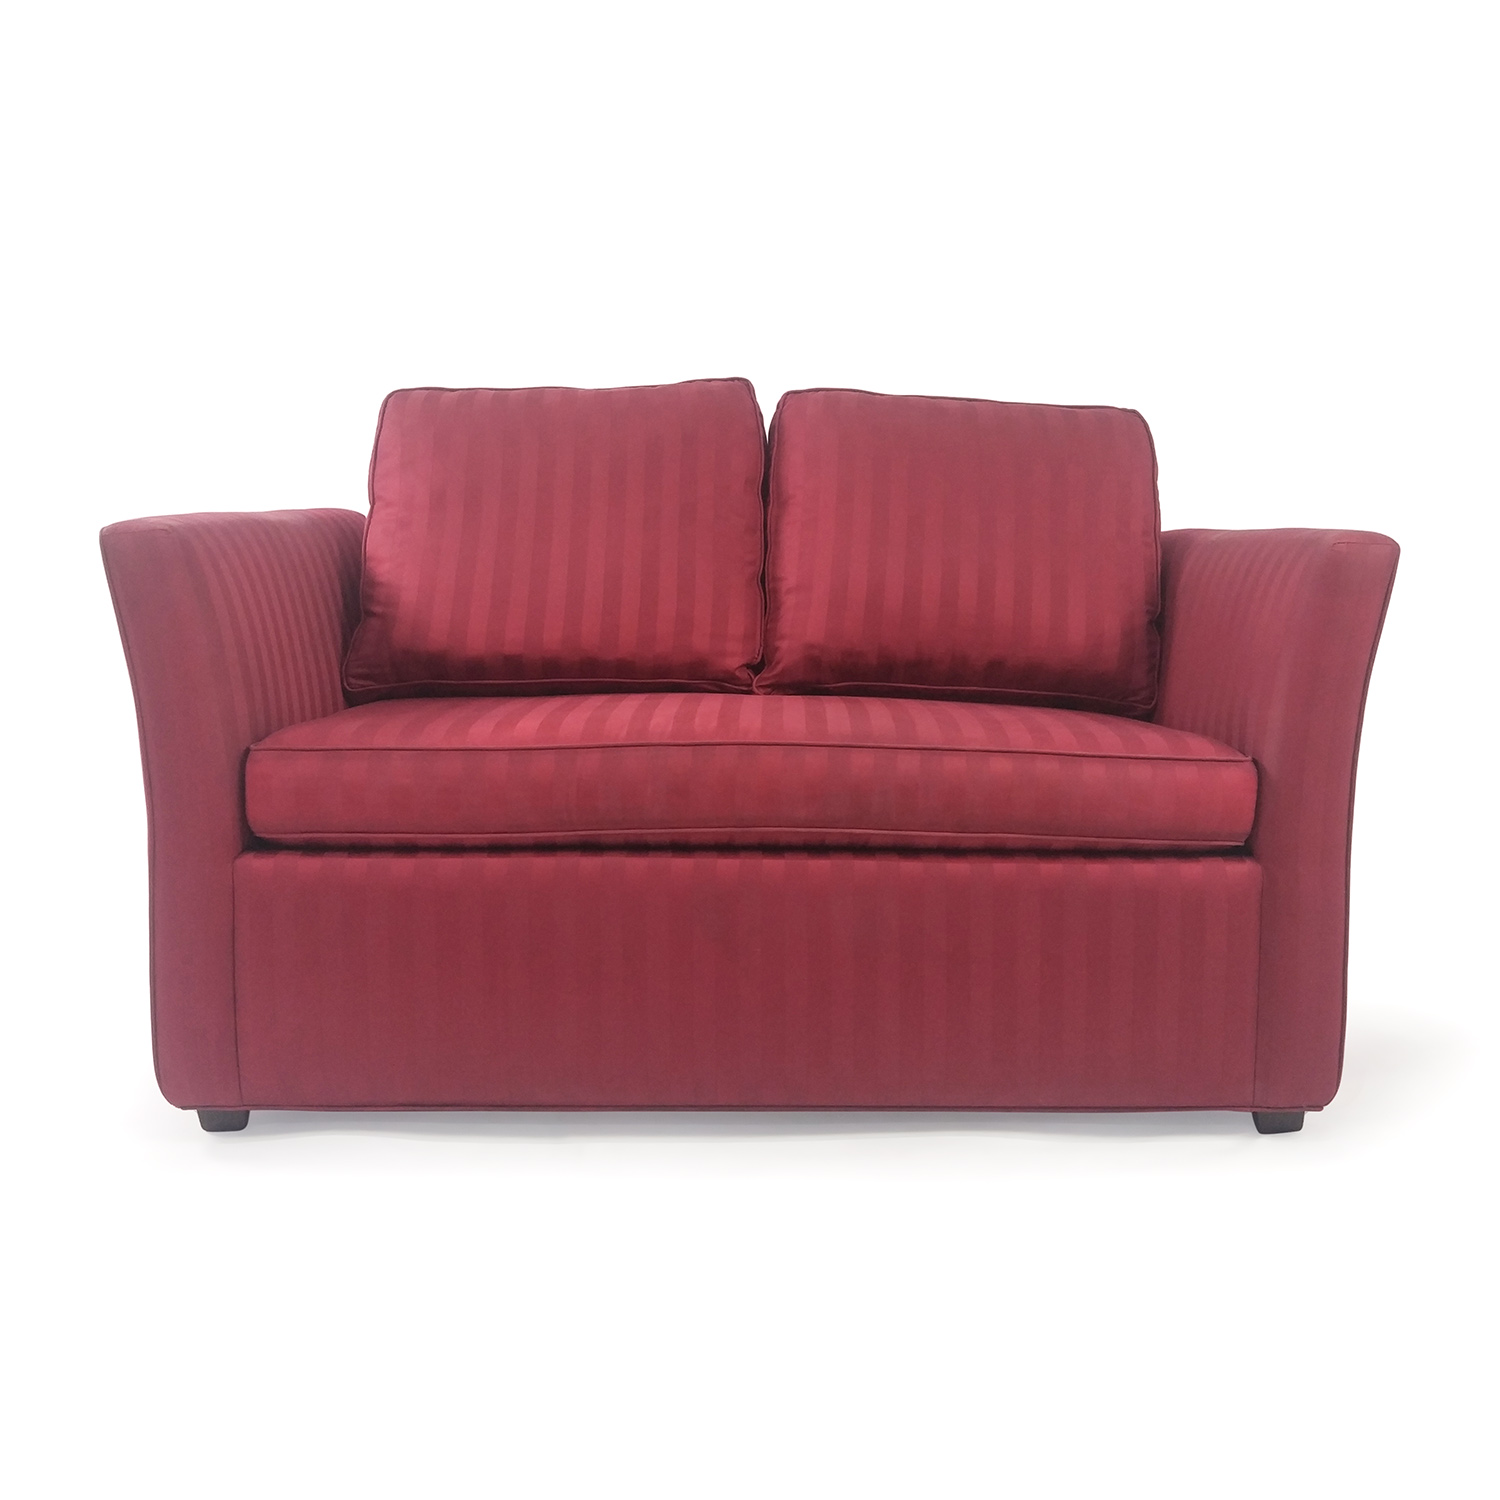 Carlyle Carlyle Custom Loveseat With Pullout Frame price